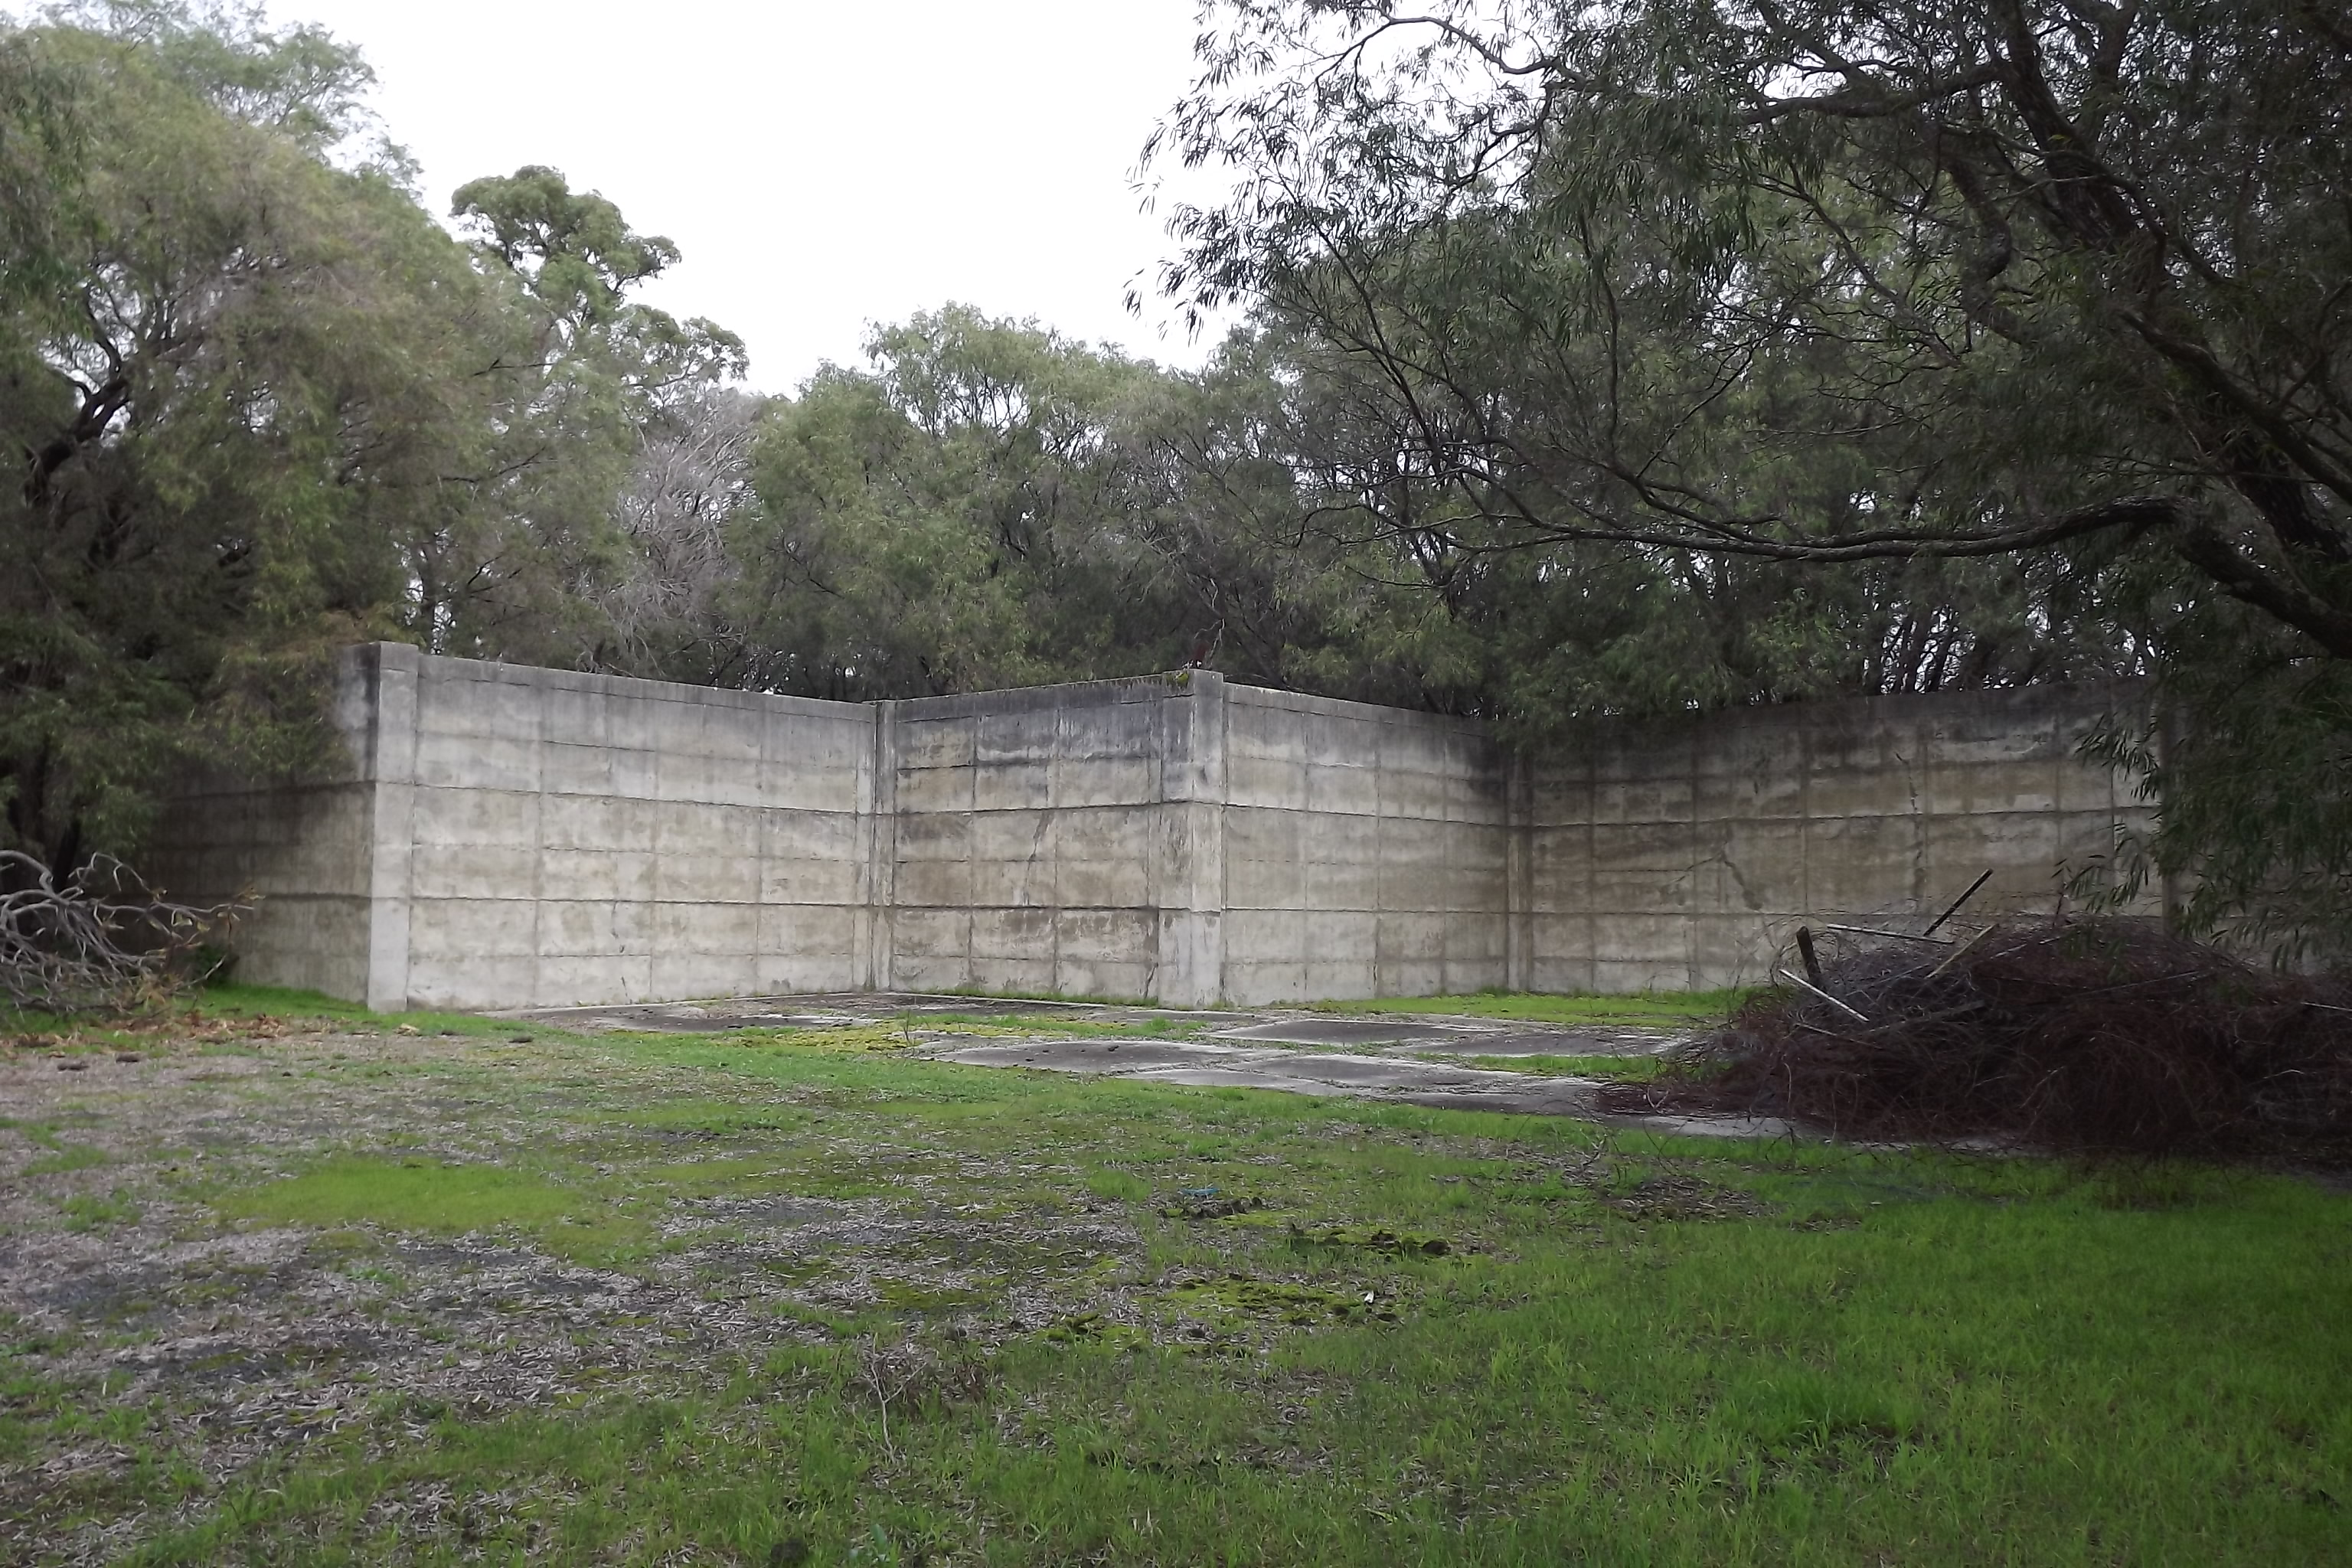 One of the remaining hangars